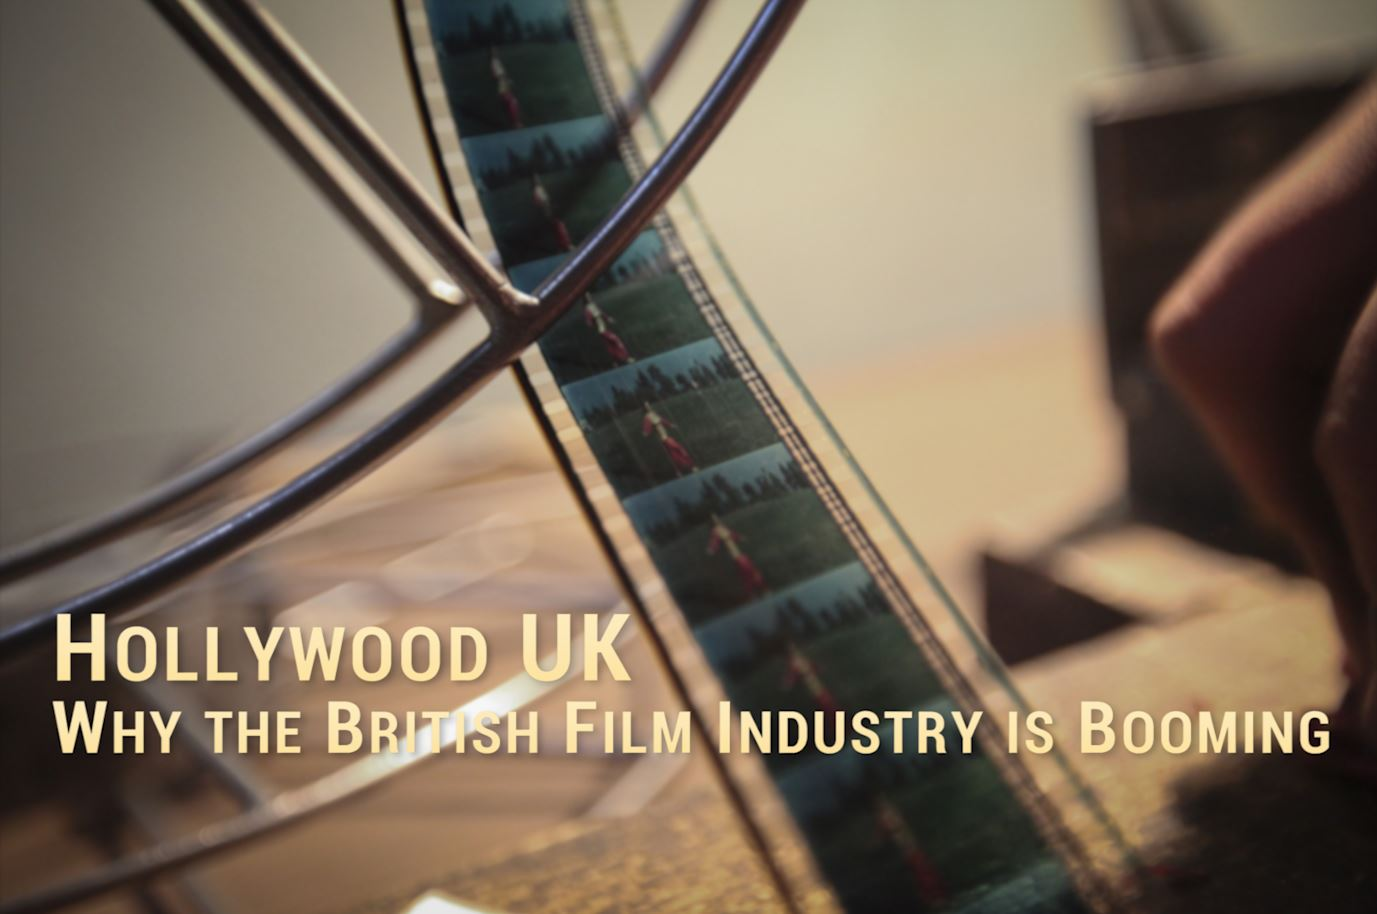 Hollywood UK: Why the British Film Industry is Booming